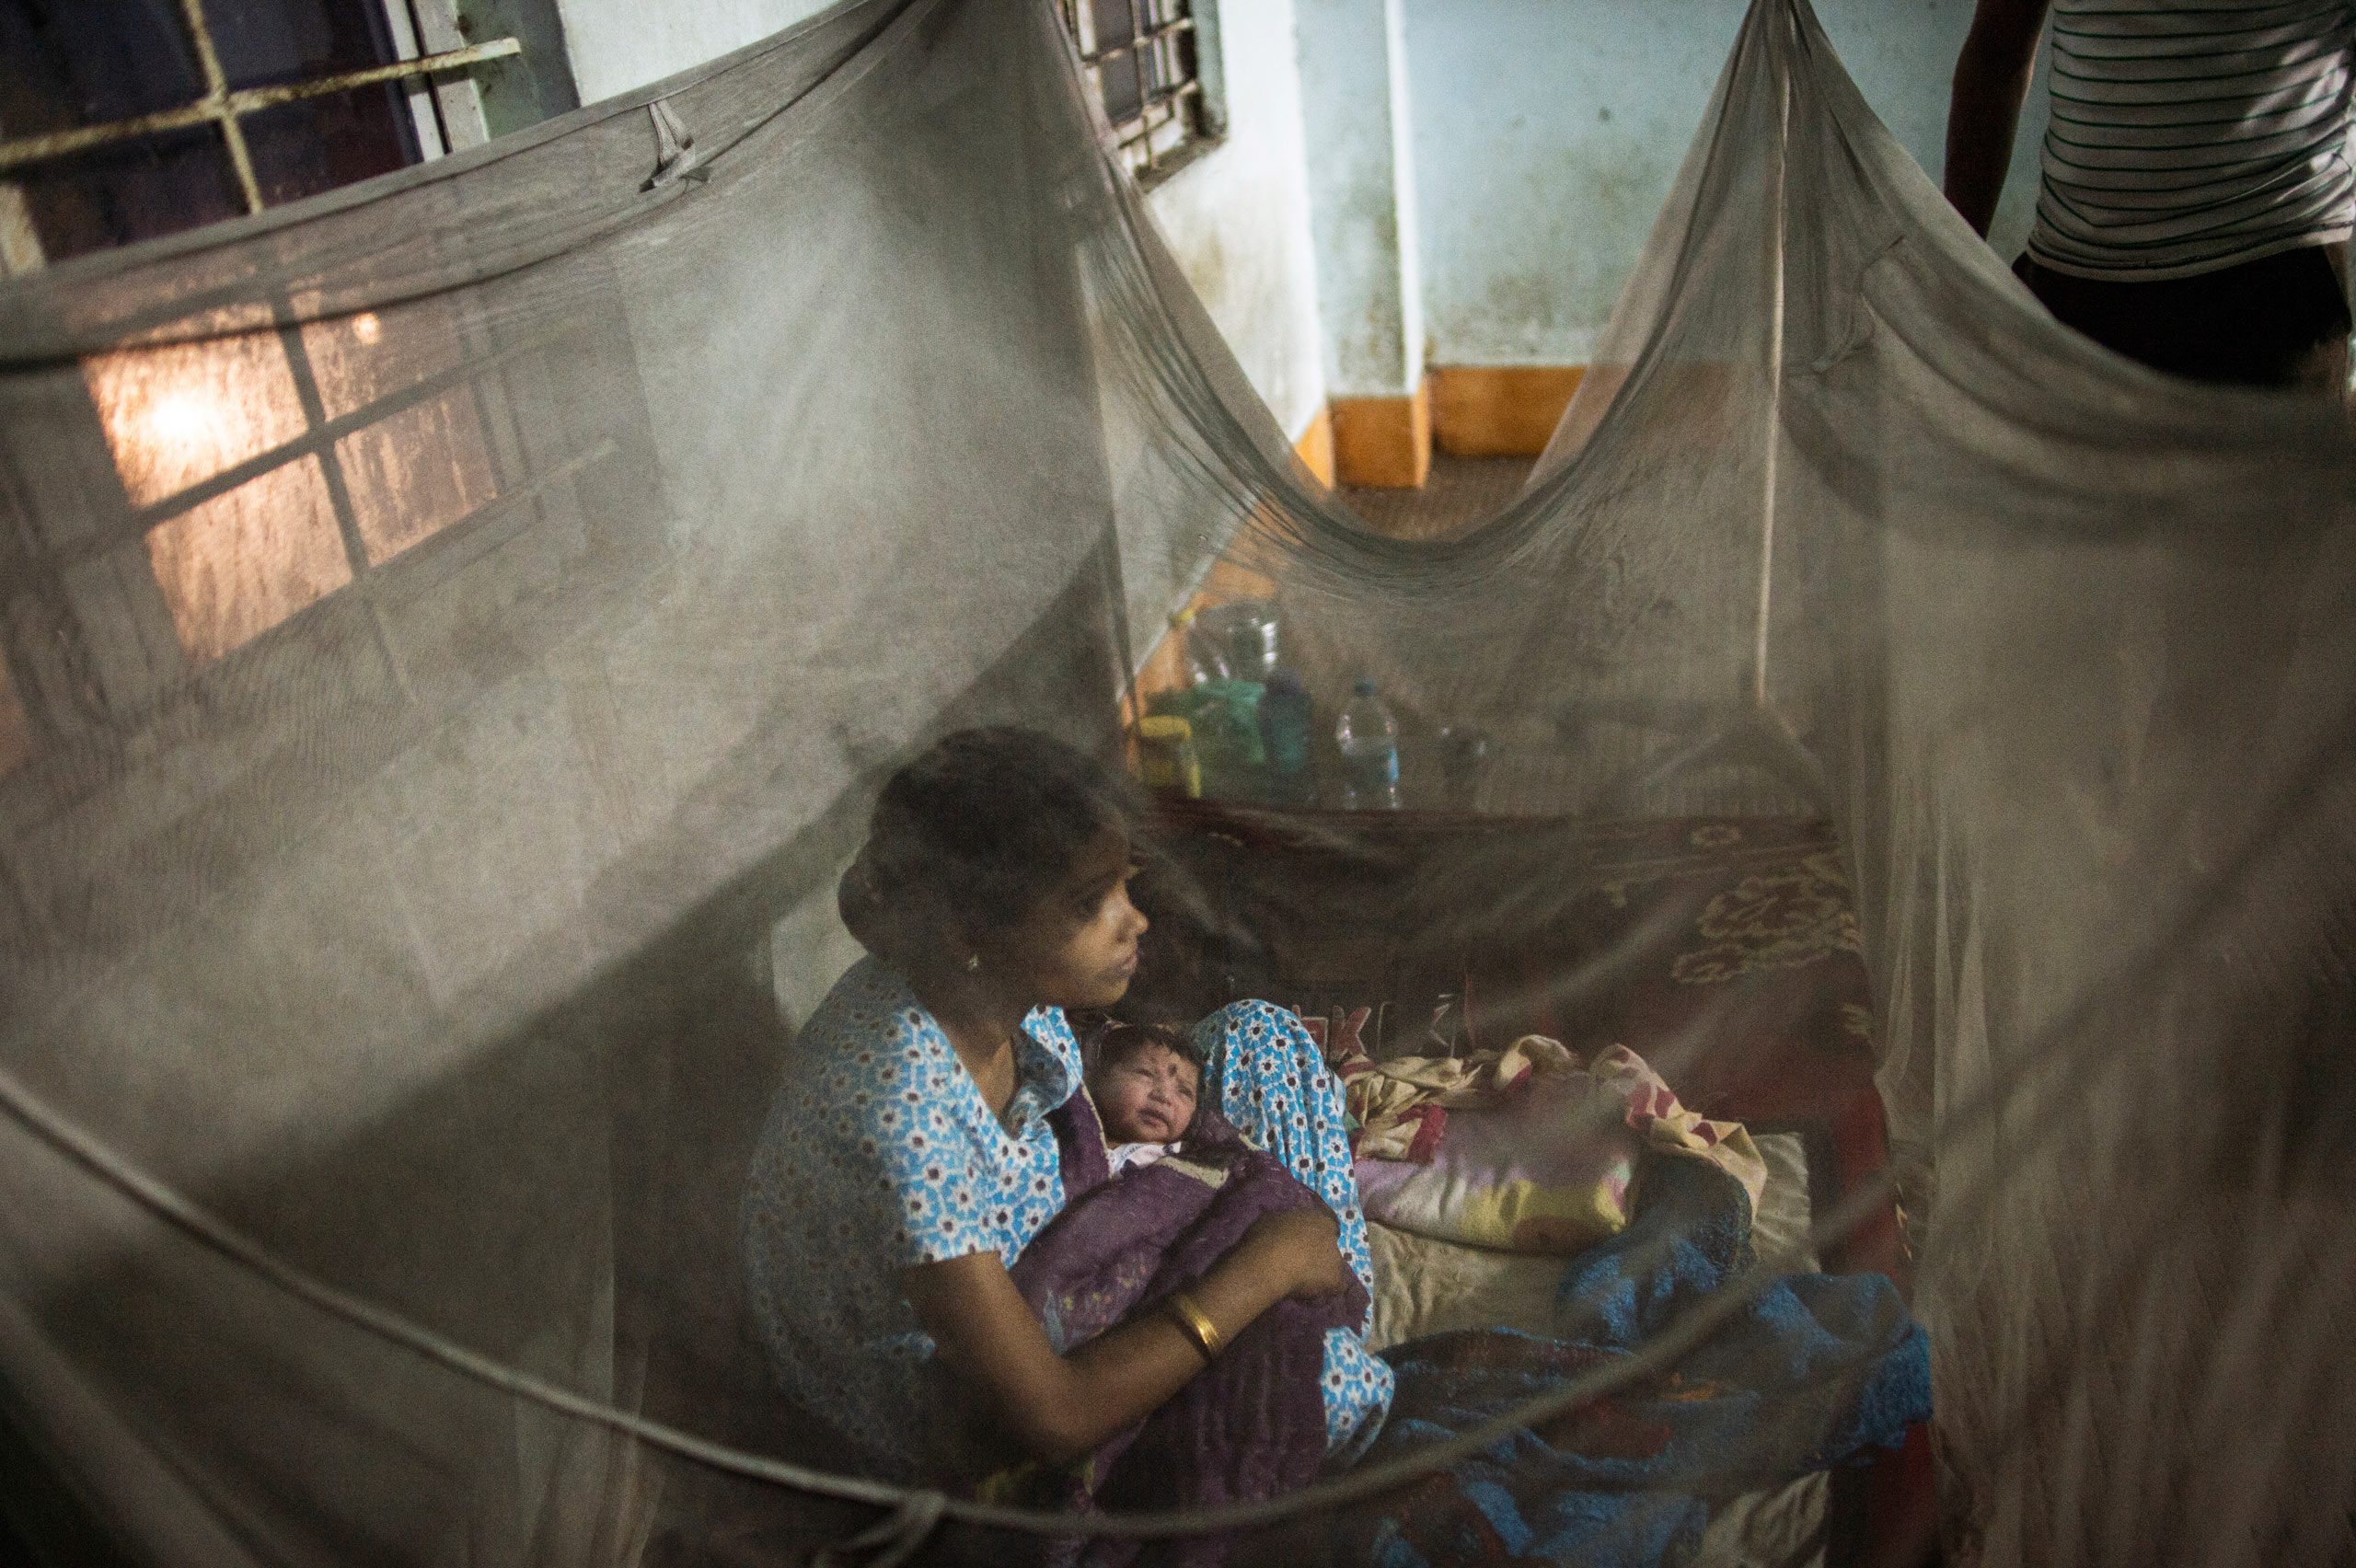 Indian families sleep outside a postnatal ward, where women are in labor and recovering from delivery,  accompanied by their families. Tezpur Civil Hospital, Tezpur, Assam, India. April, 2015.